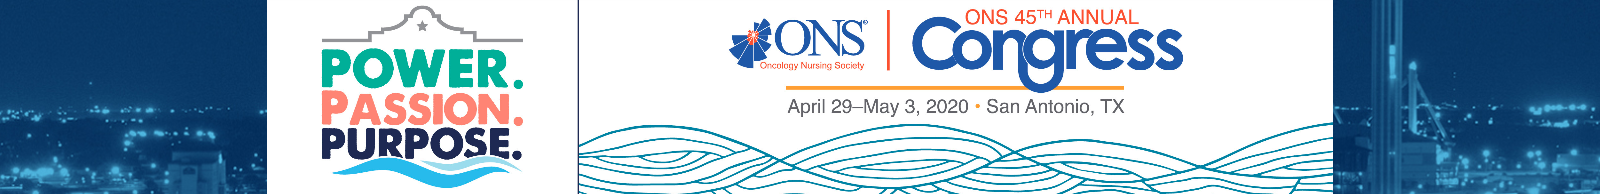 ONS 45th Annual Congress